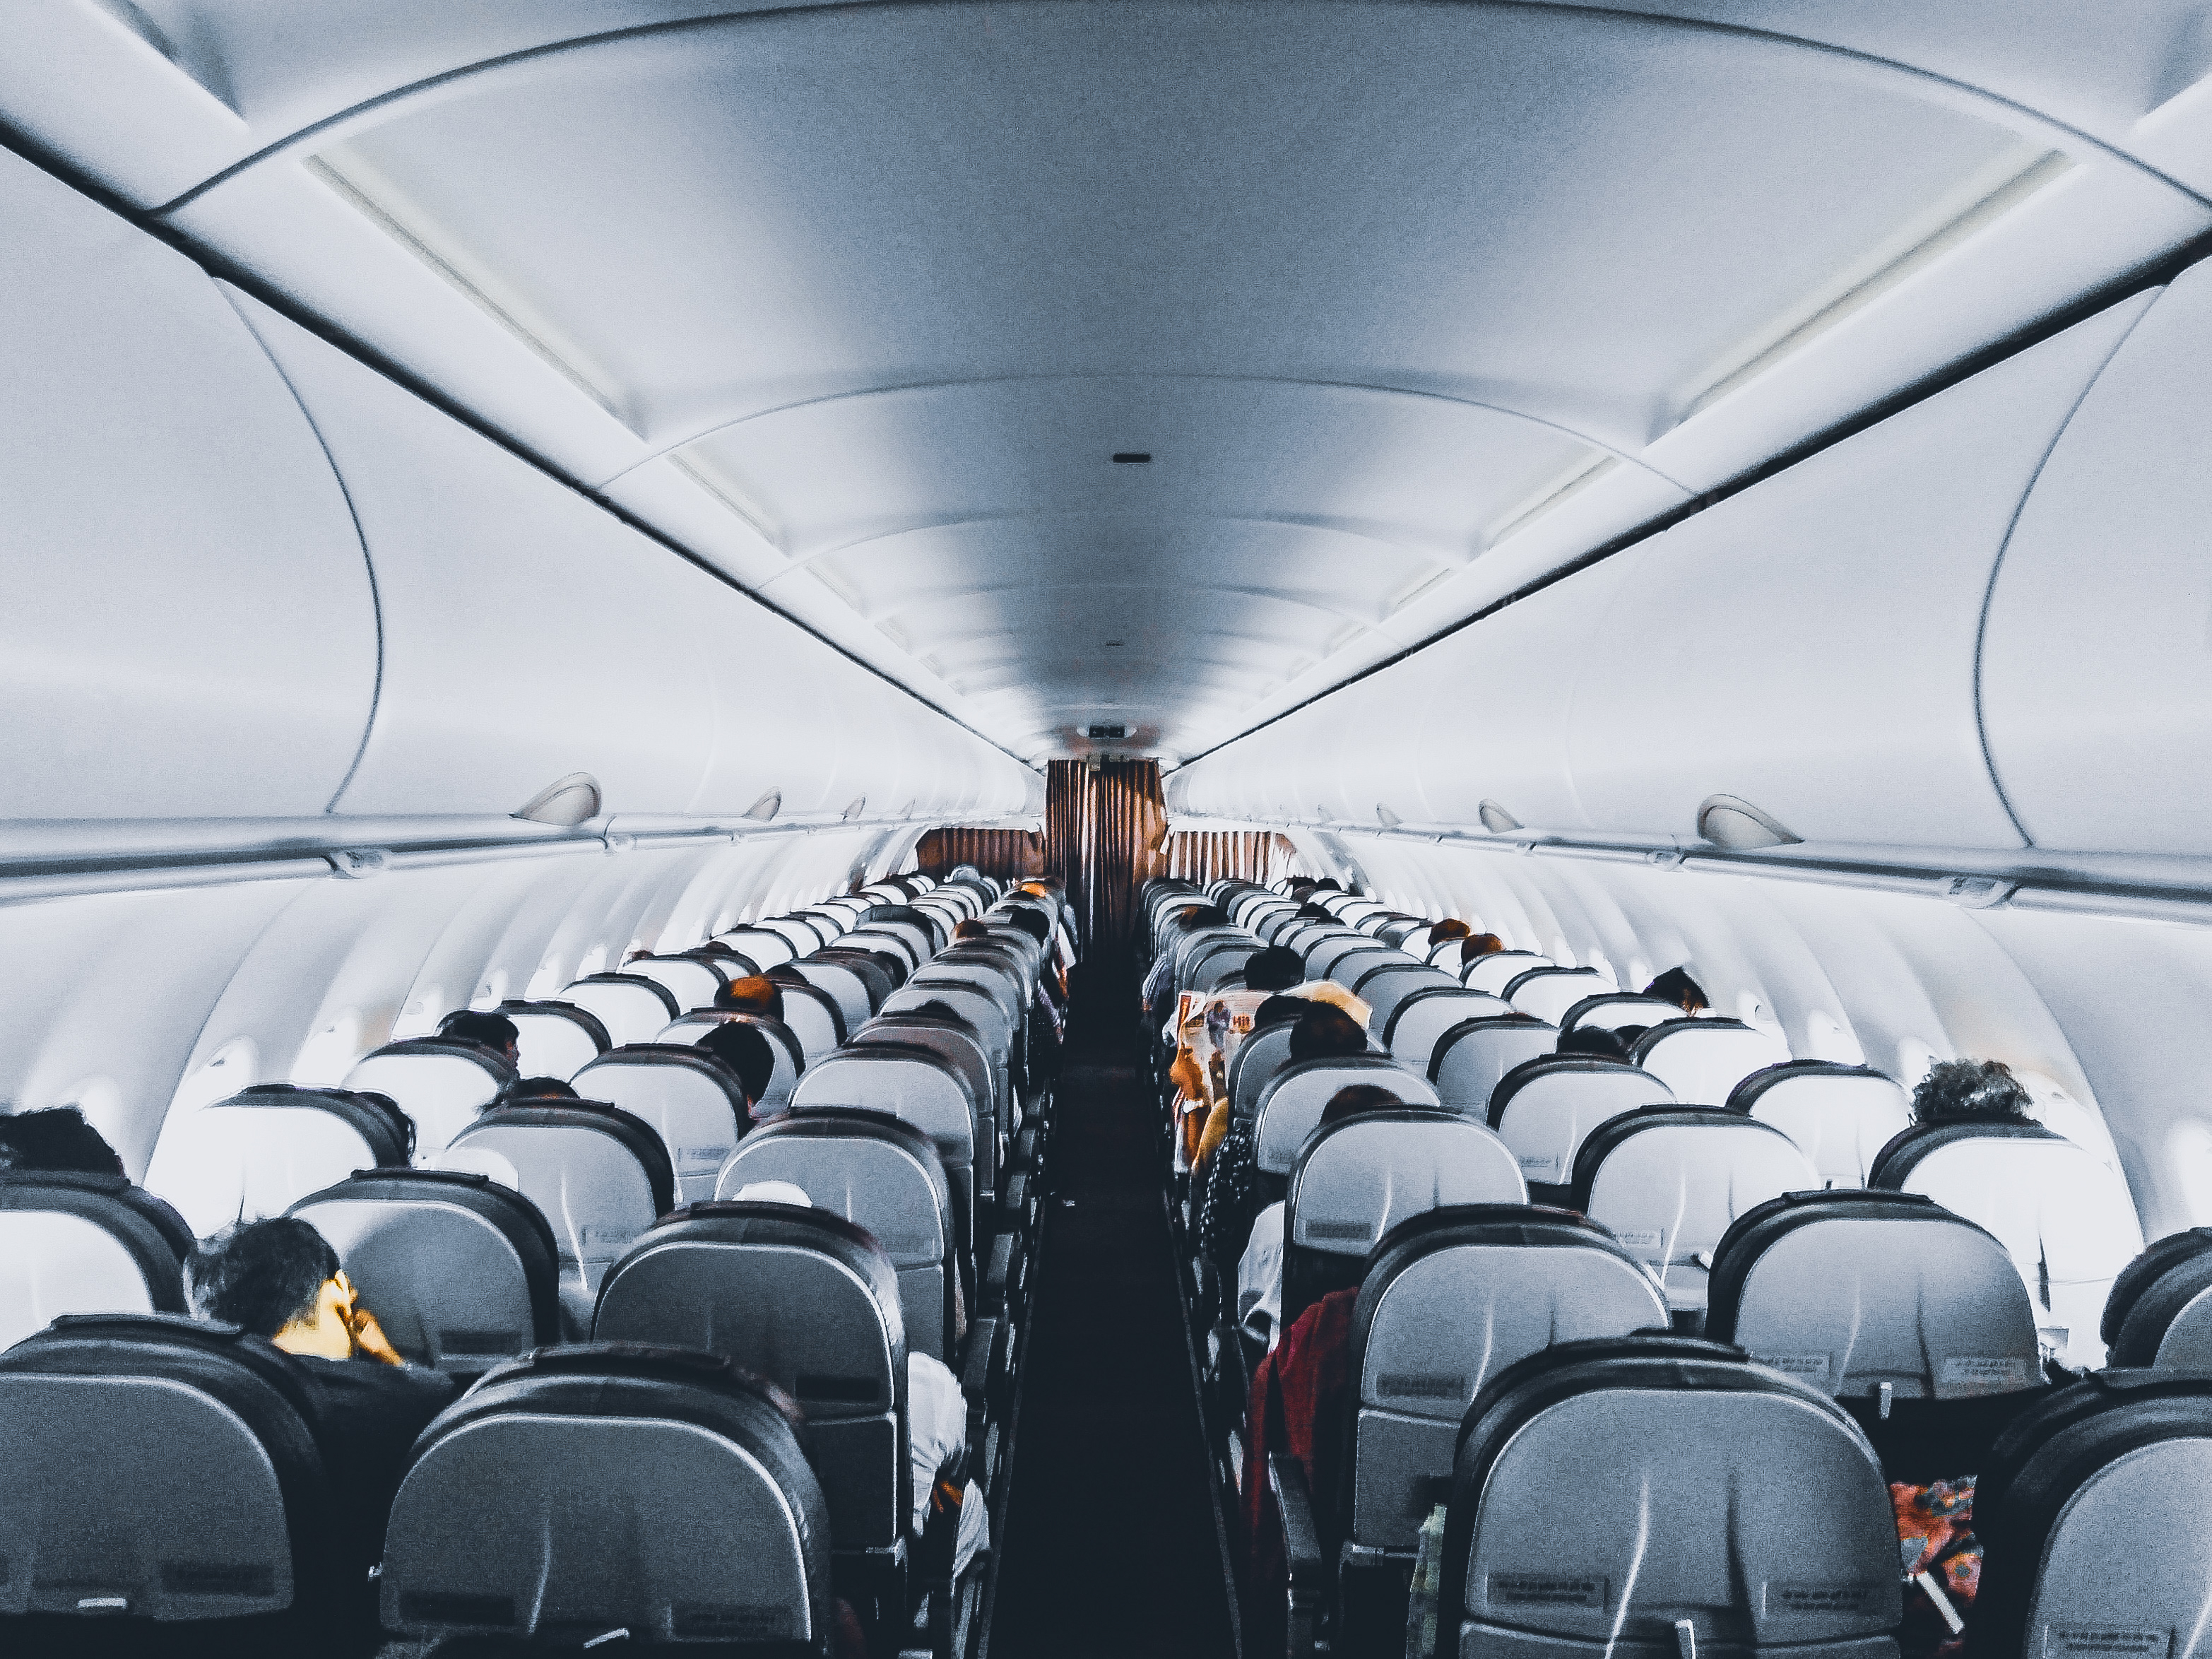 Canva - People Inside Commercial Air Plane